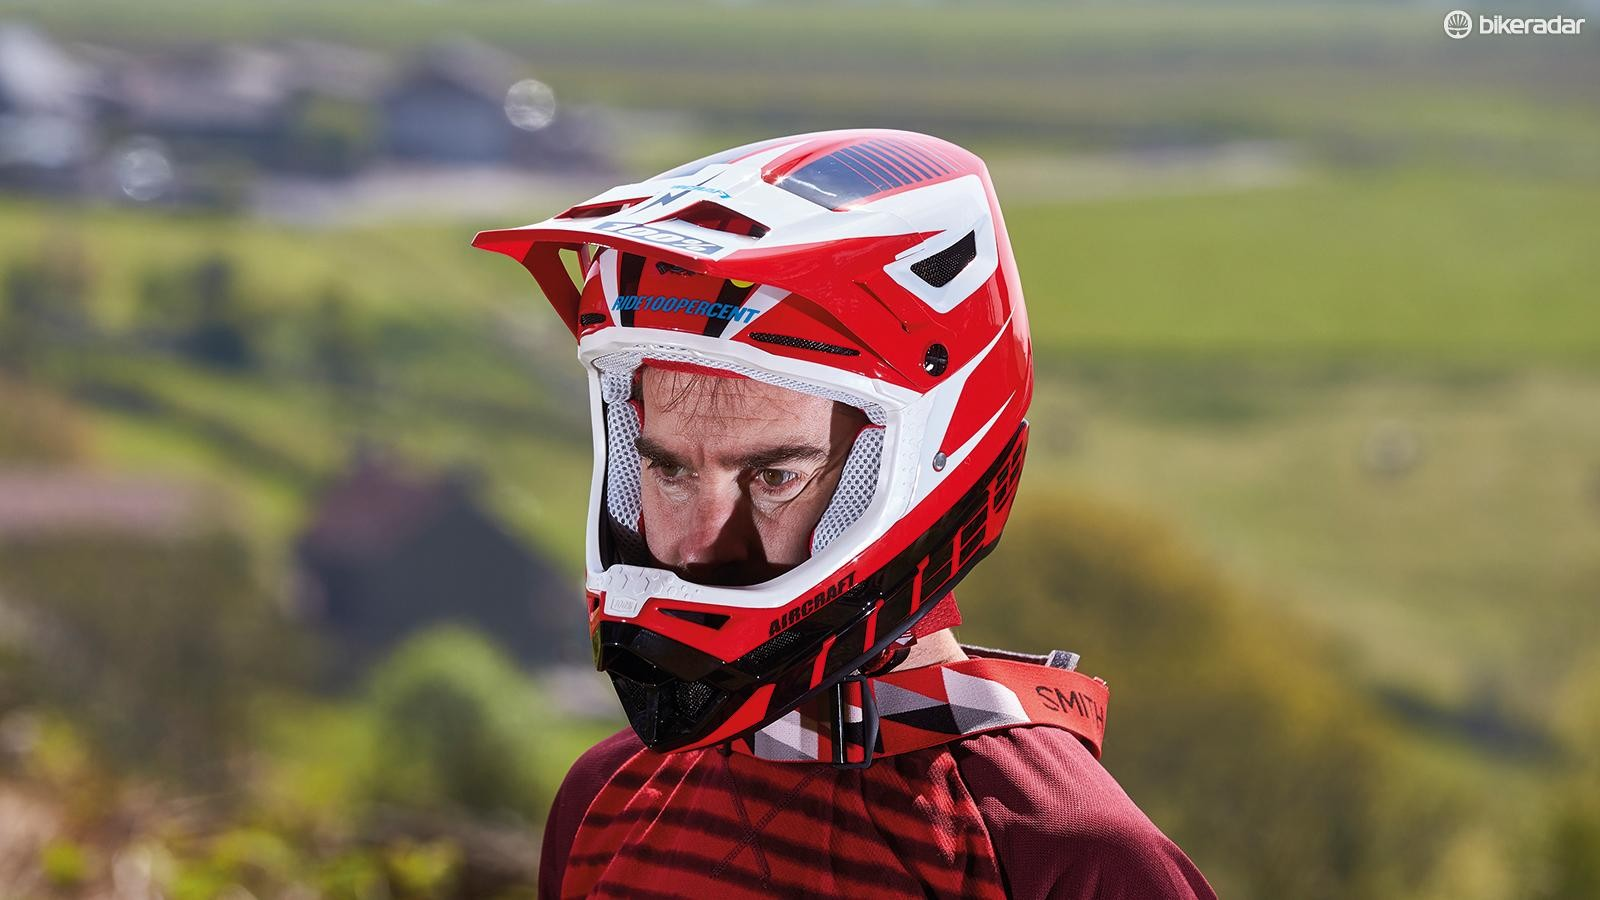 The Aircraft MIPS full-face helmet from 100%